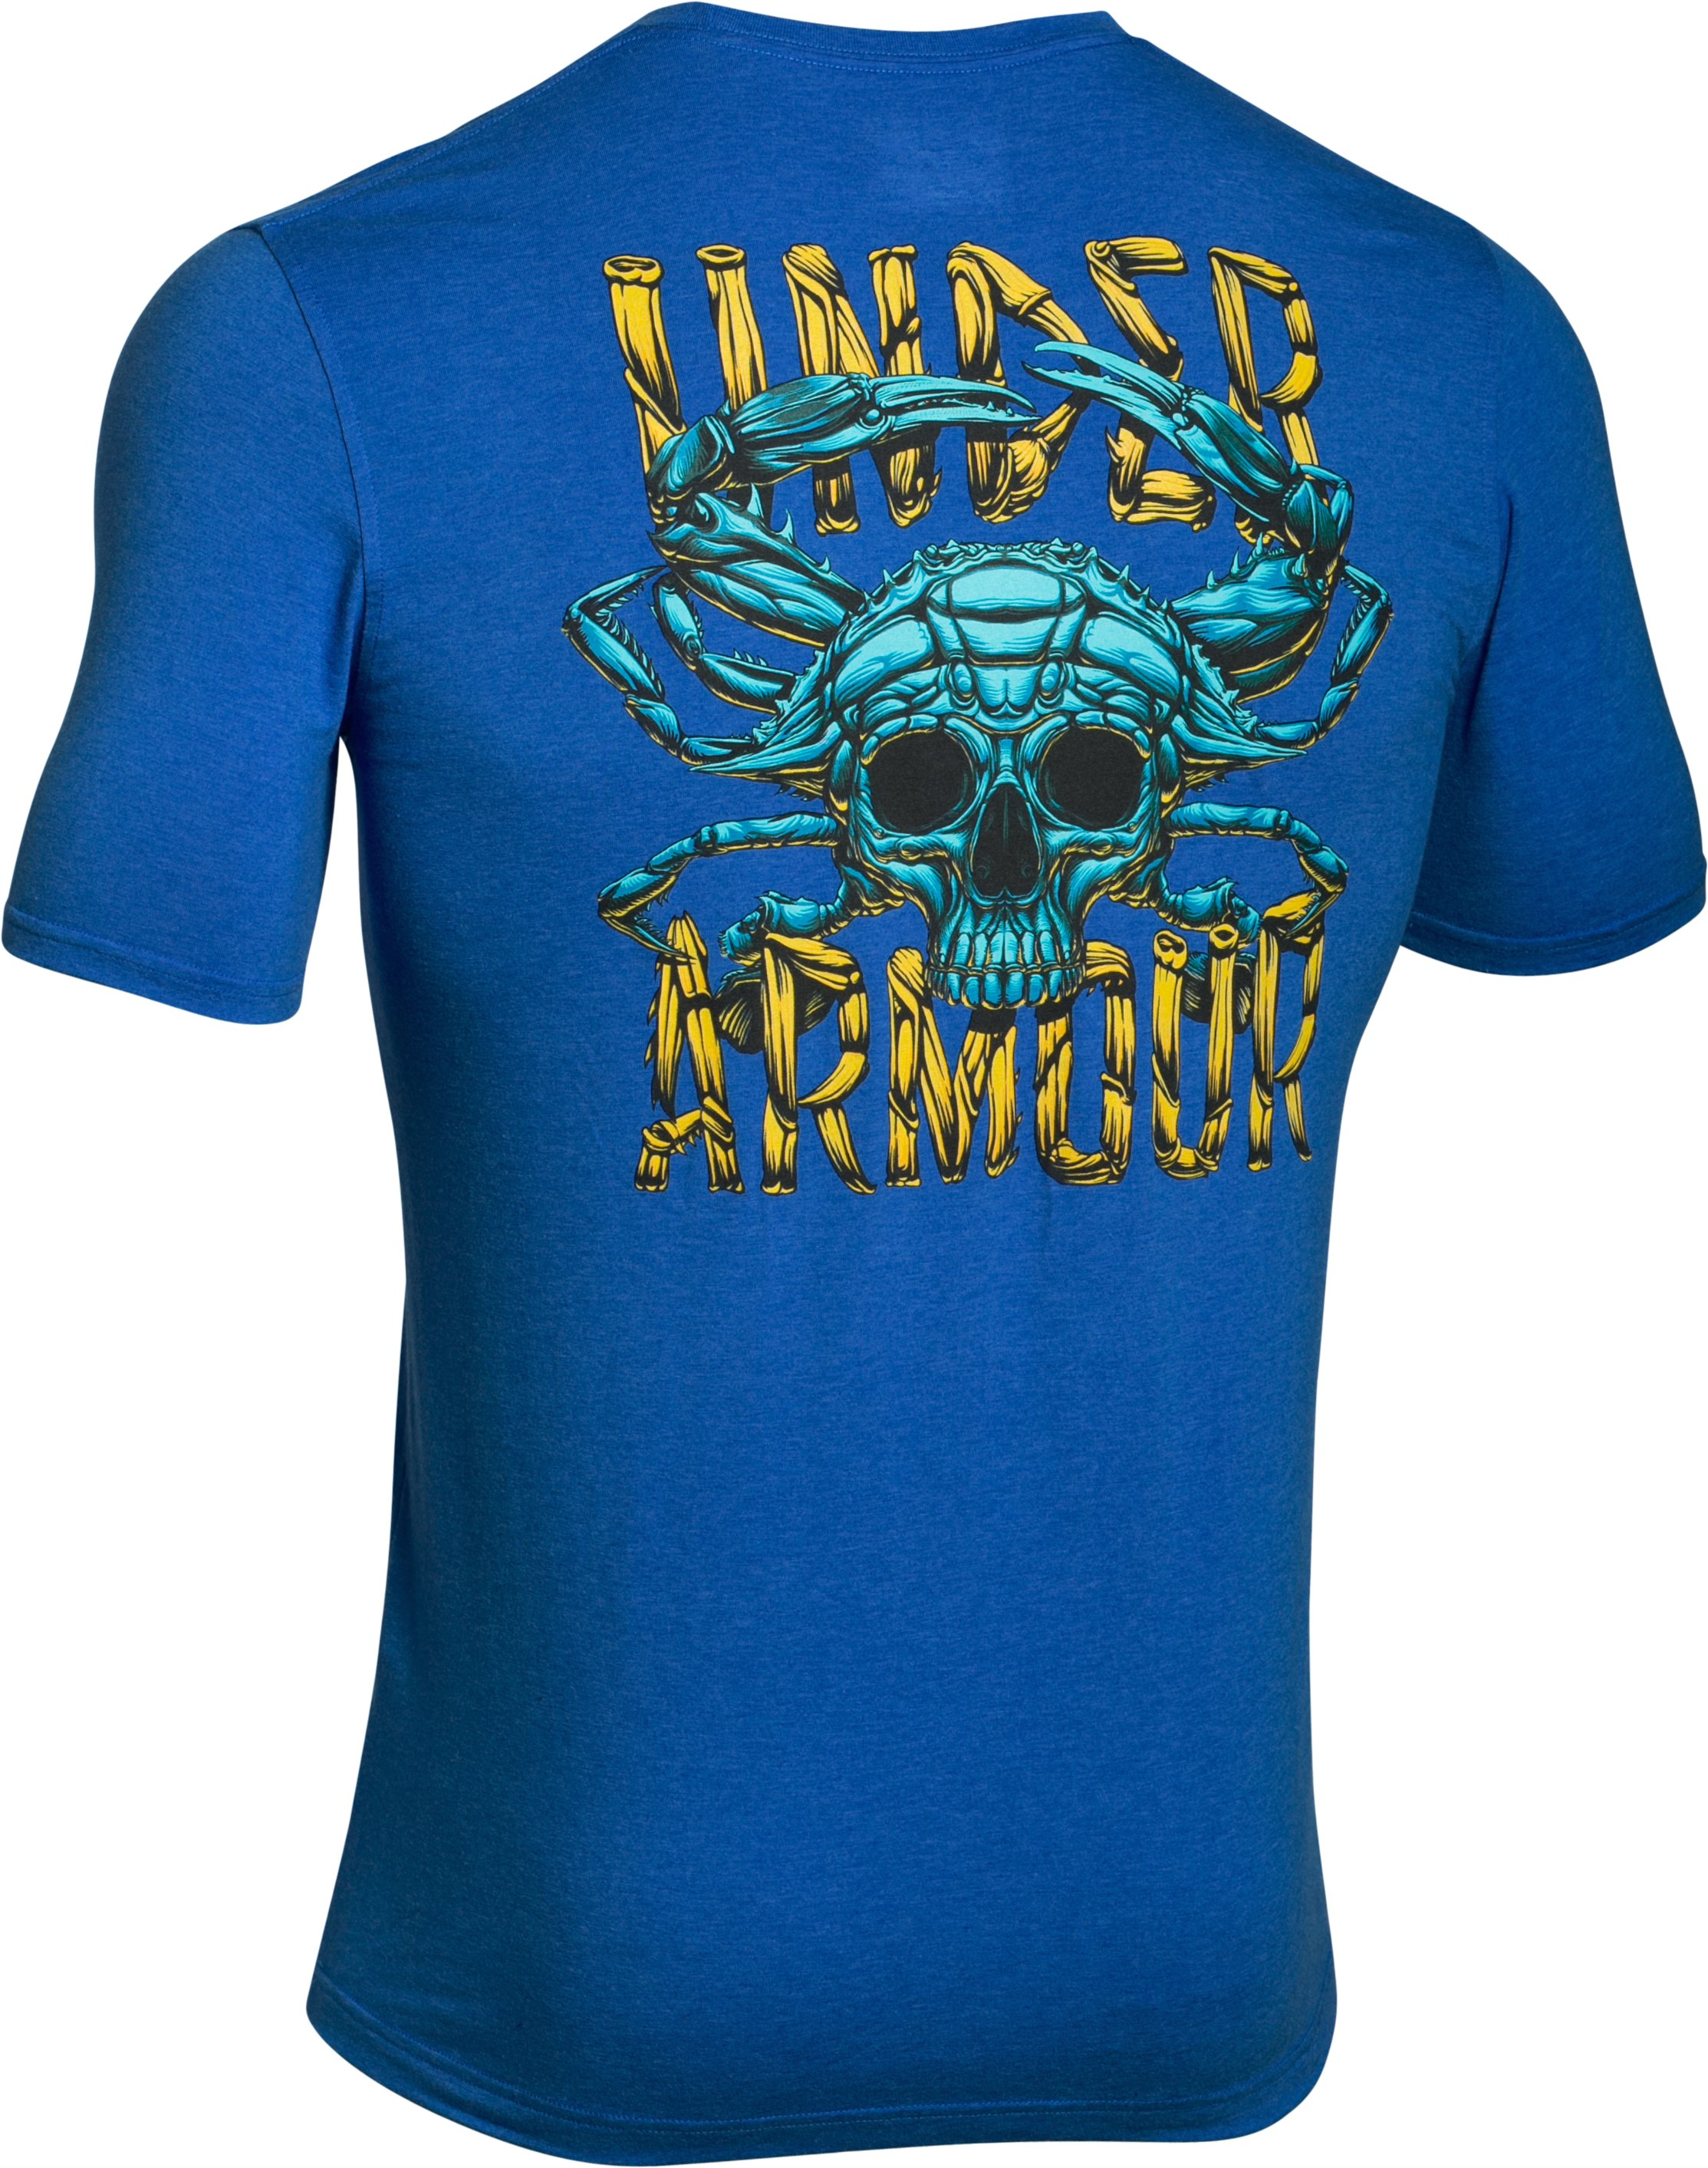 Men's UA Blue Crab T-Shirt, ULTRA BLUE